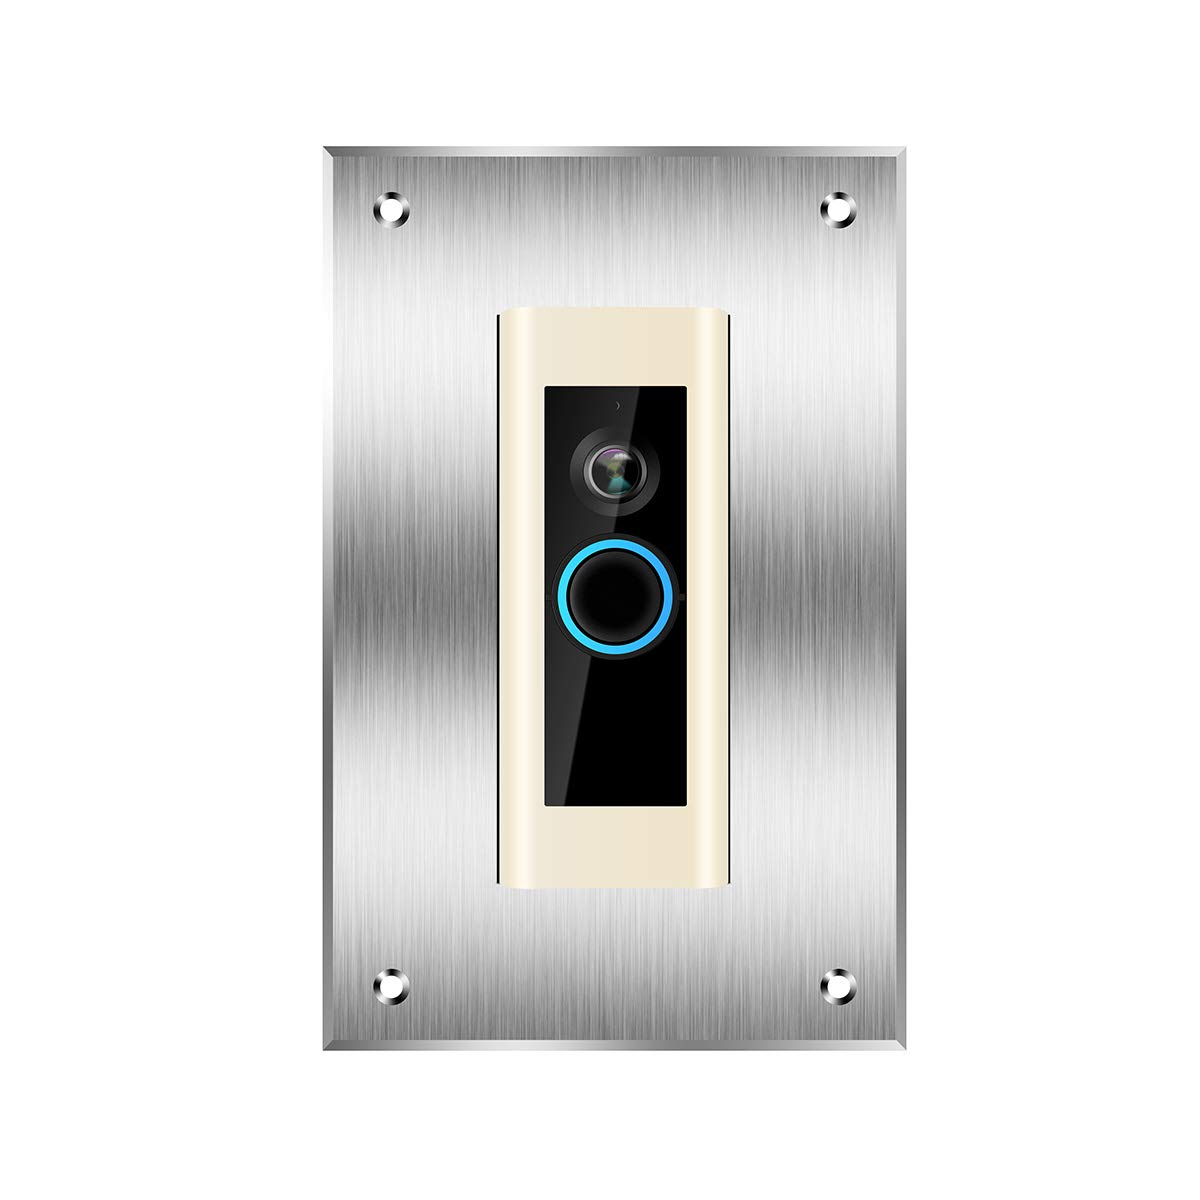 Personalize Aluminum Square Faceplate Cover Fingerprint Resistant Bracket Mount Silver DYKEISS Mount Wall Plate for Ring Video Doorbell Ring Doorbell 2